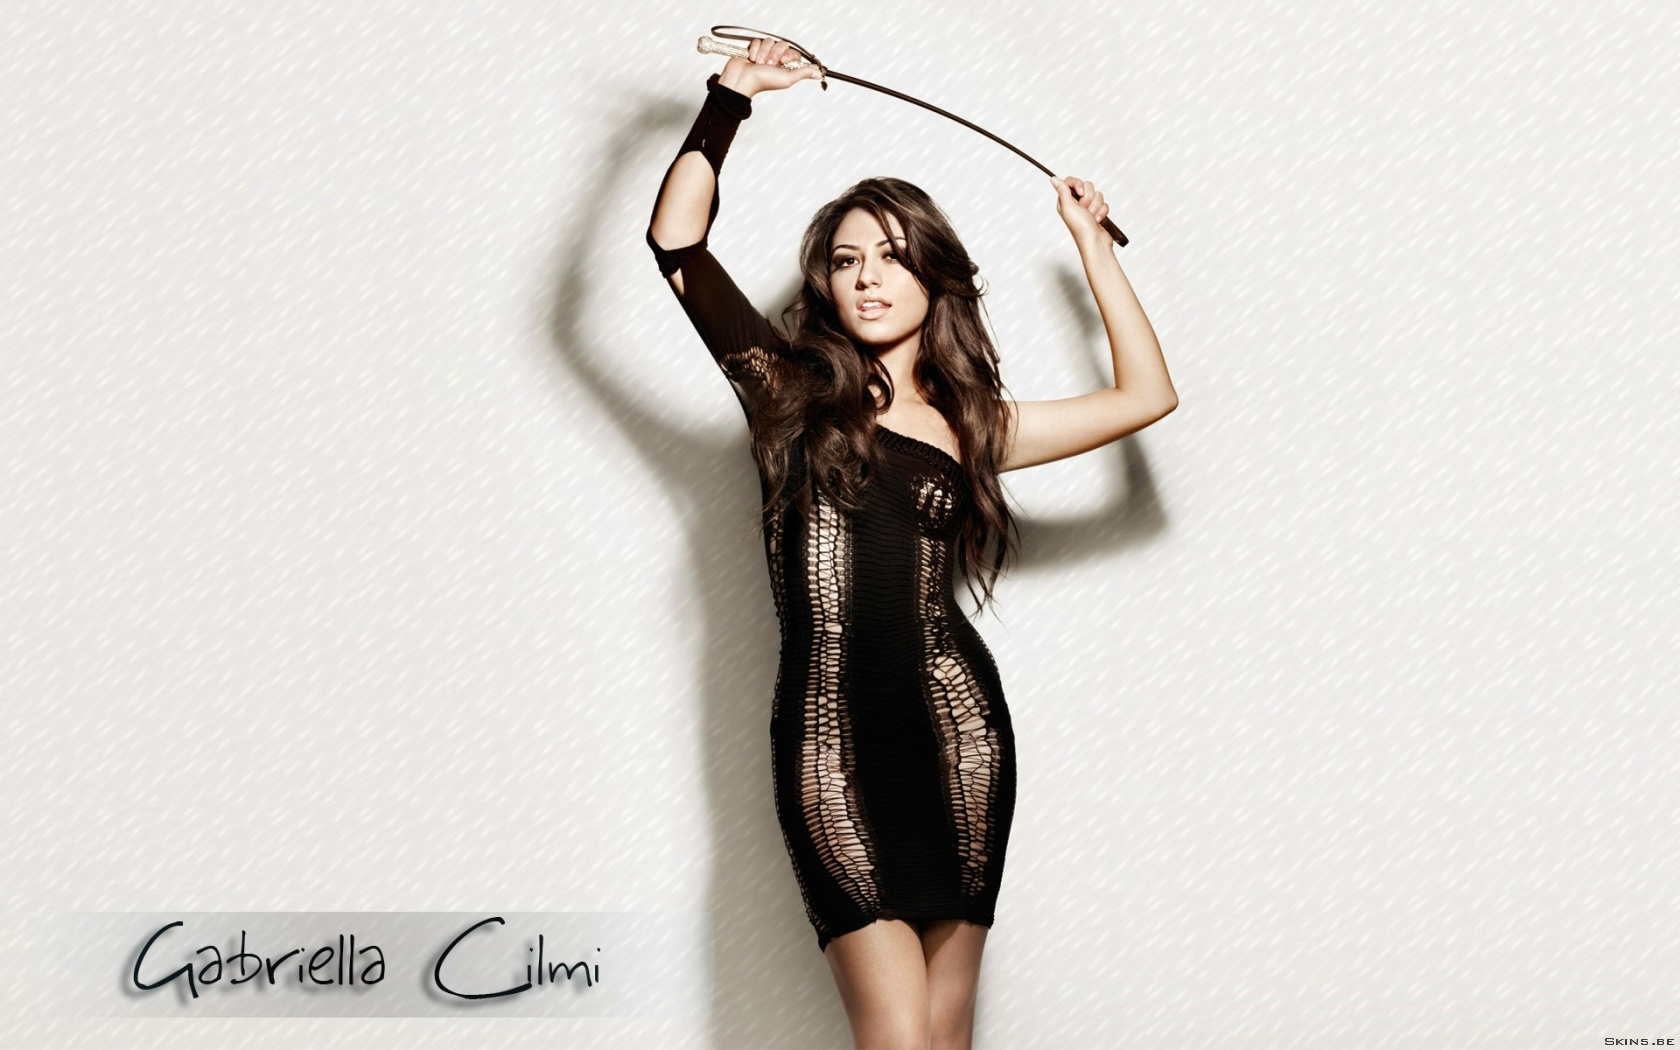 Gabriella Cilmi wallpaper (#39421)